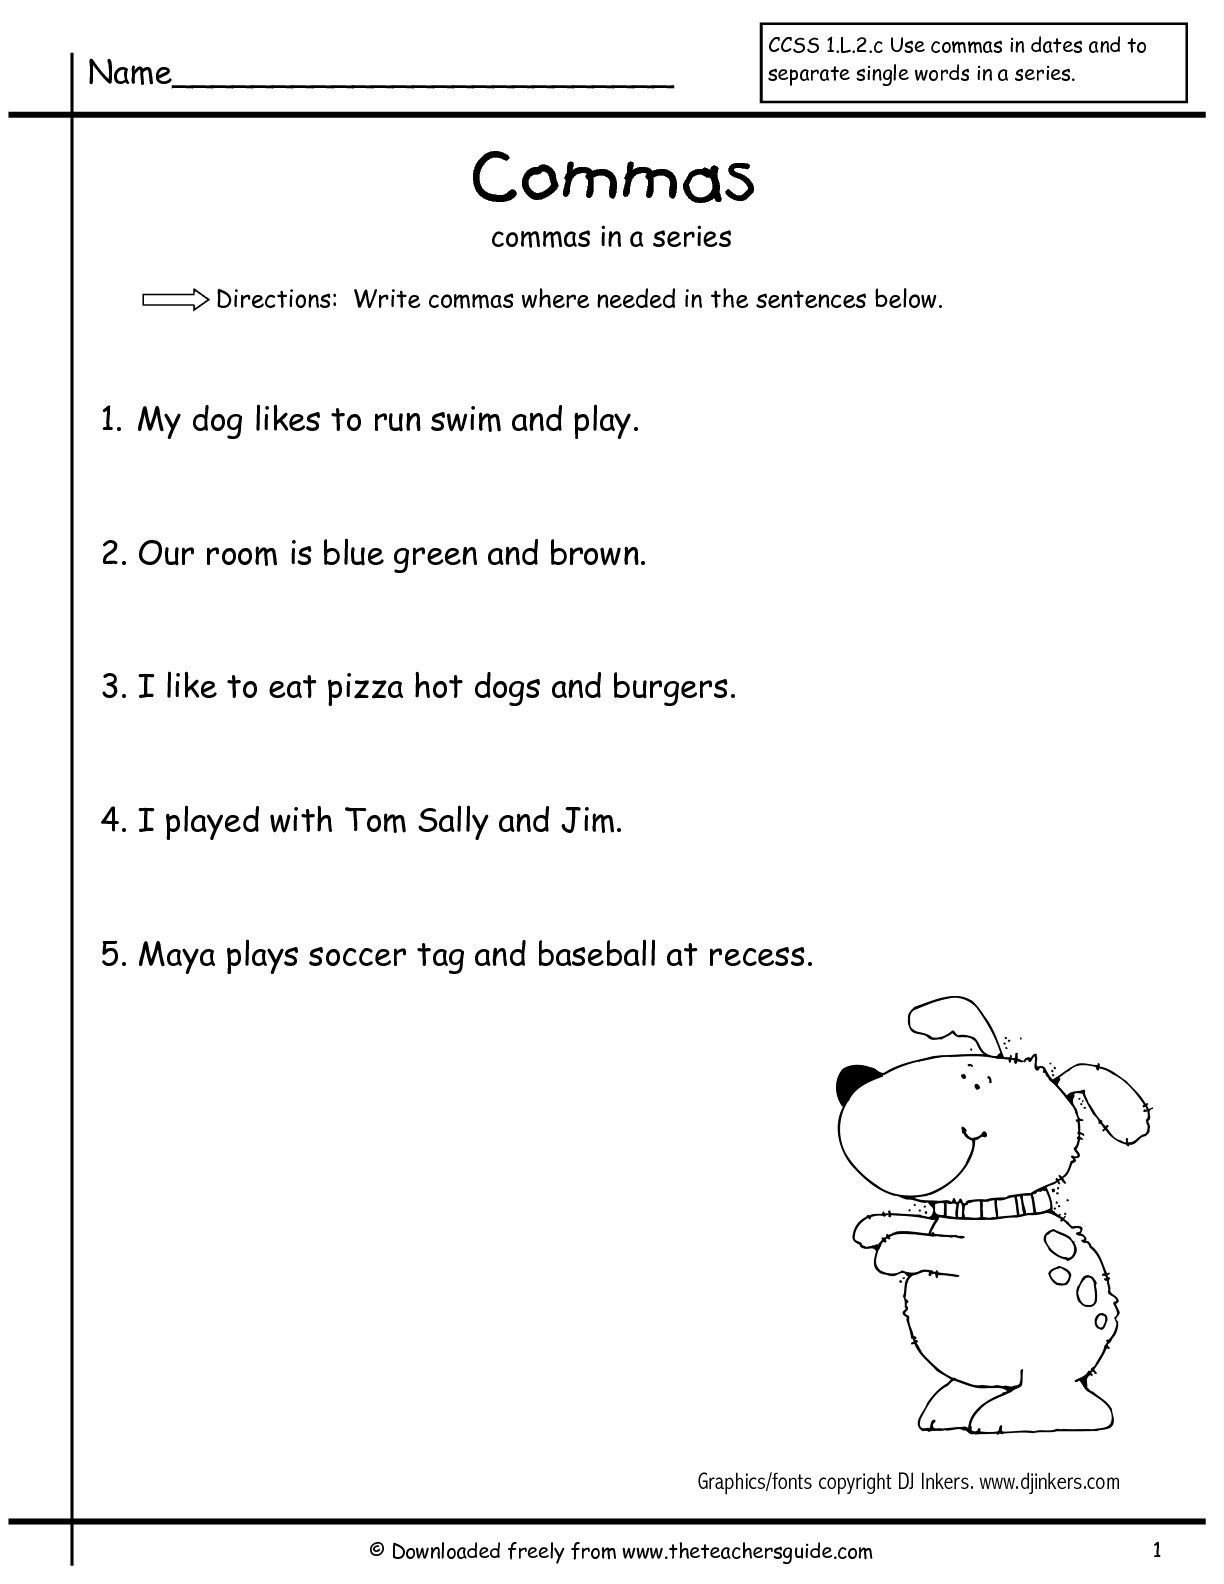 Commas Worksheet 4th Grade Masinseriesfirstgrade2 001 001 1224—1584